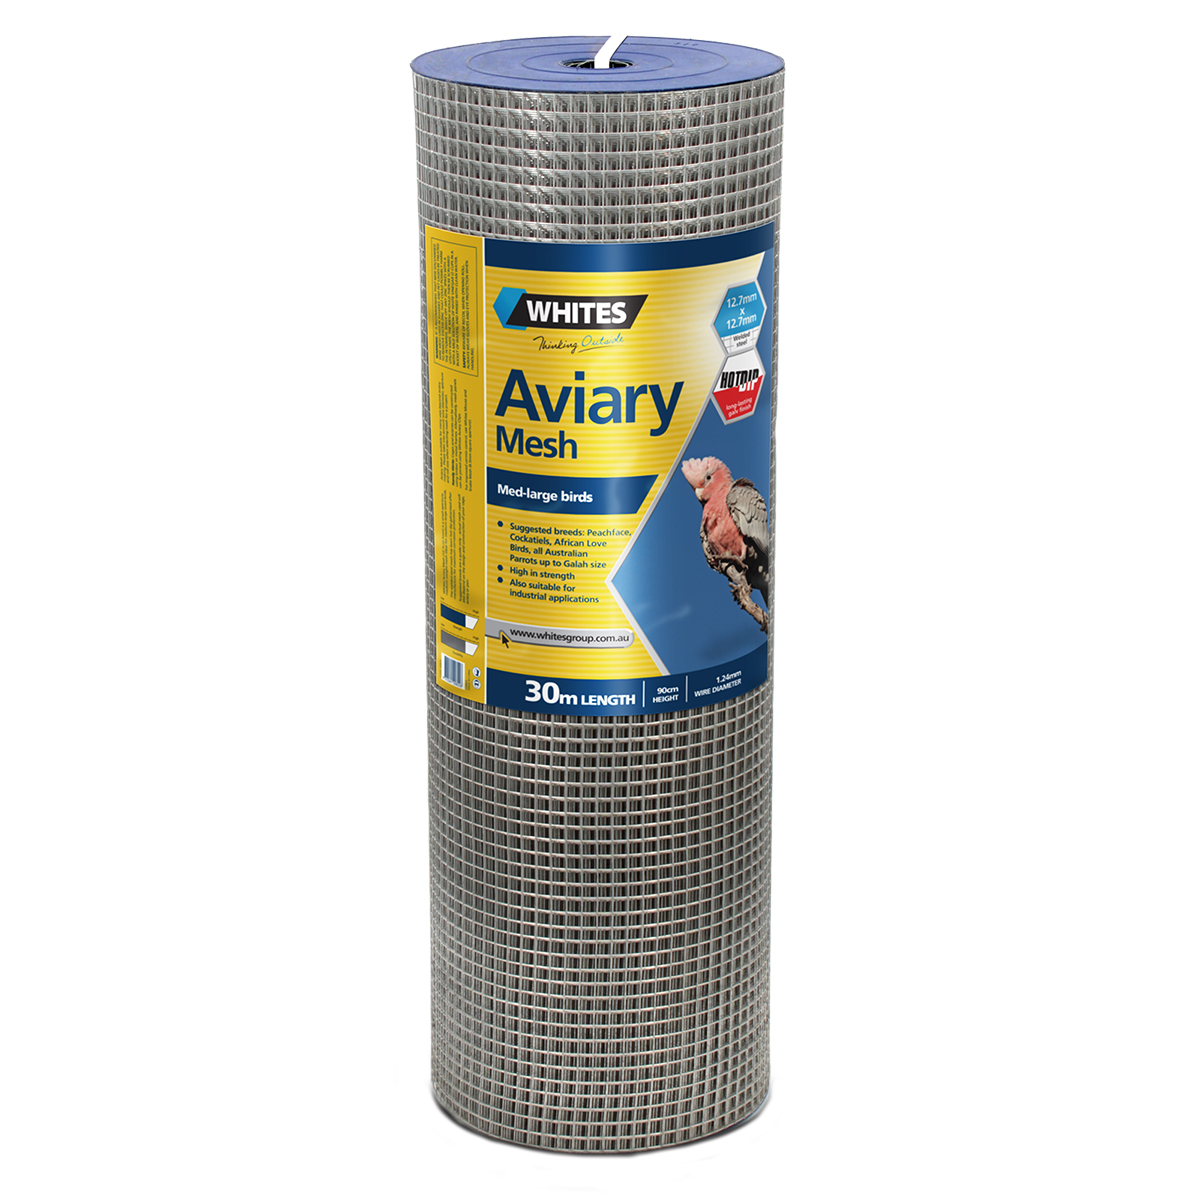 20822 90cm 12x12 Medium Bird Aviary Mesh 30m